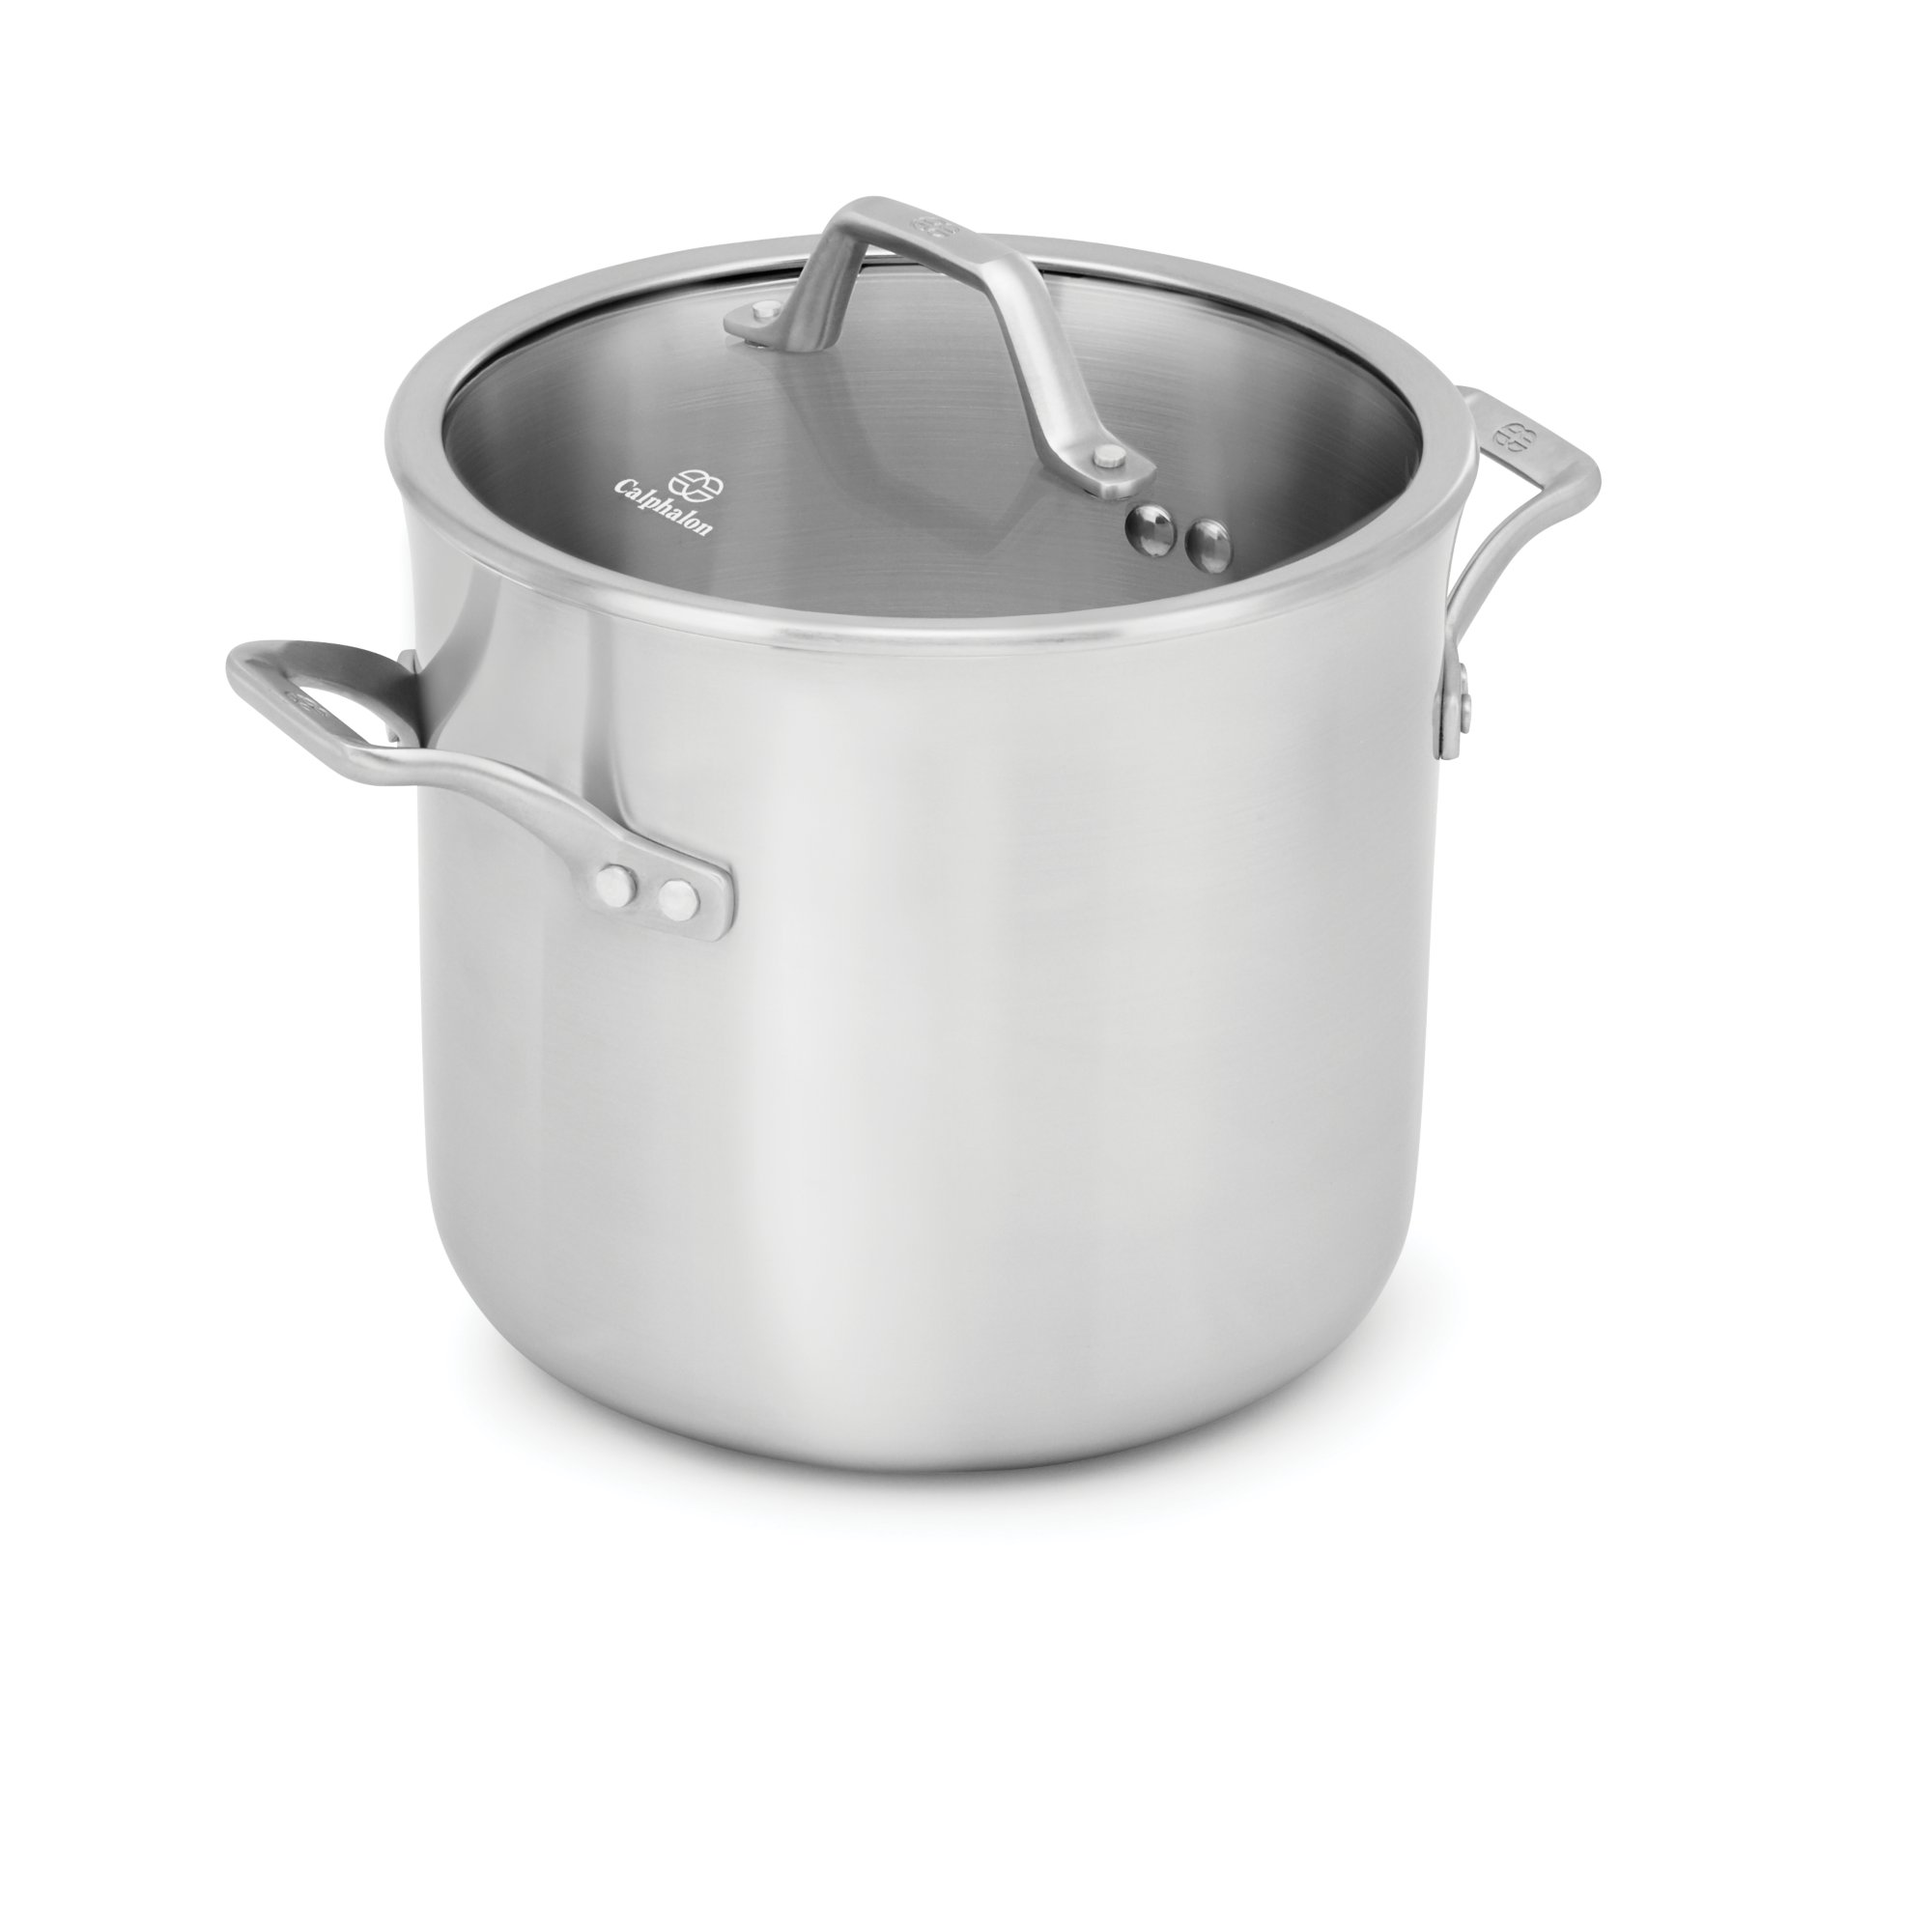 Calphalon Signature™ Stainless Steel 8-qt. Stock Pot with Cover